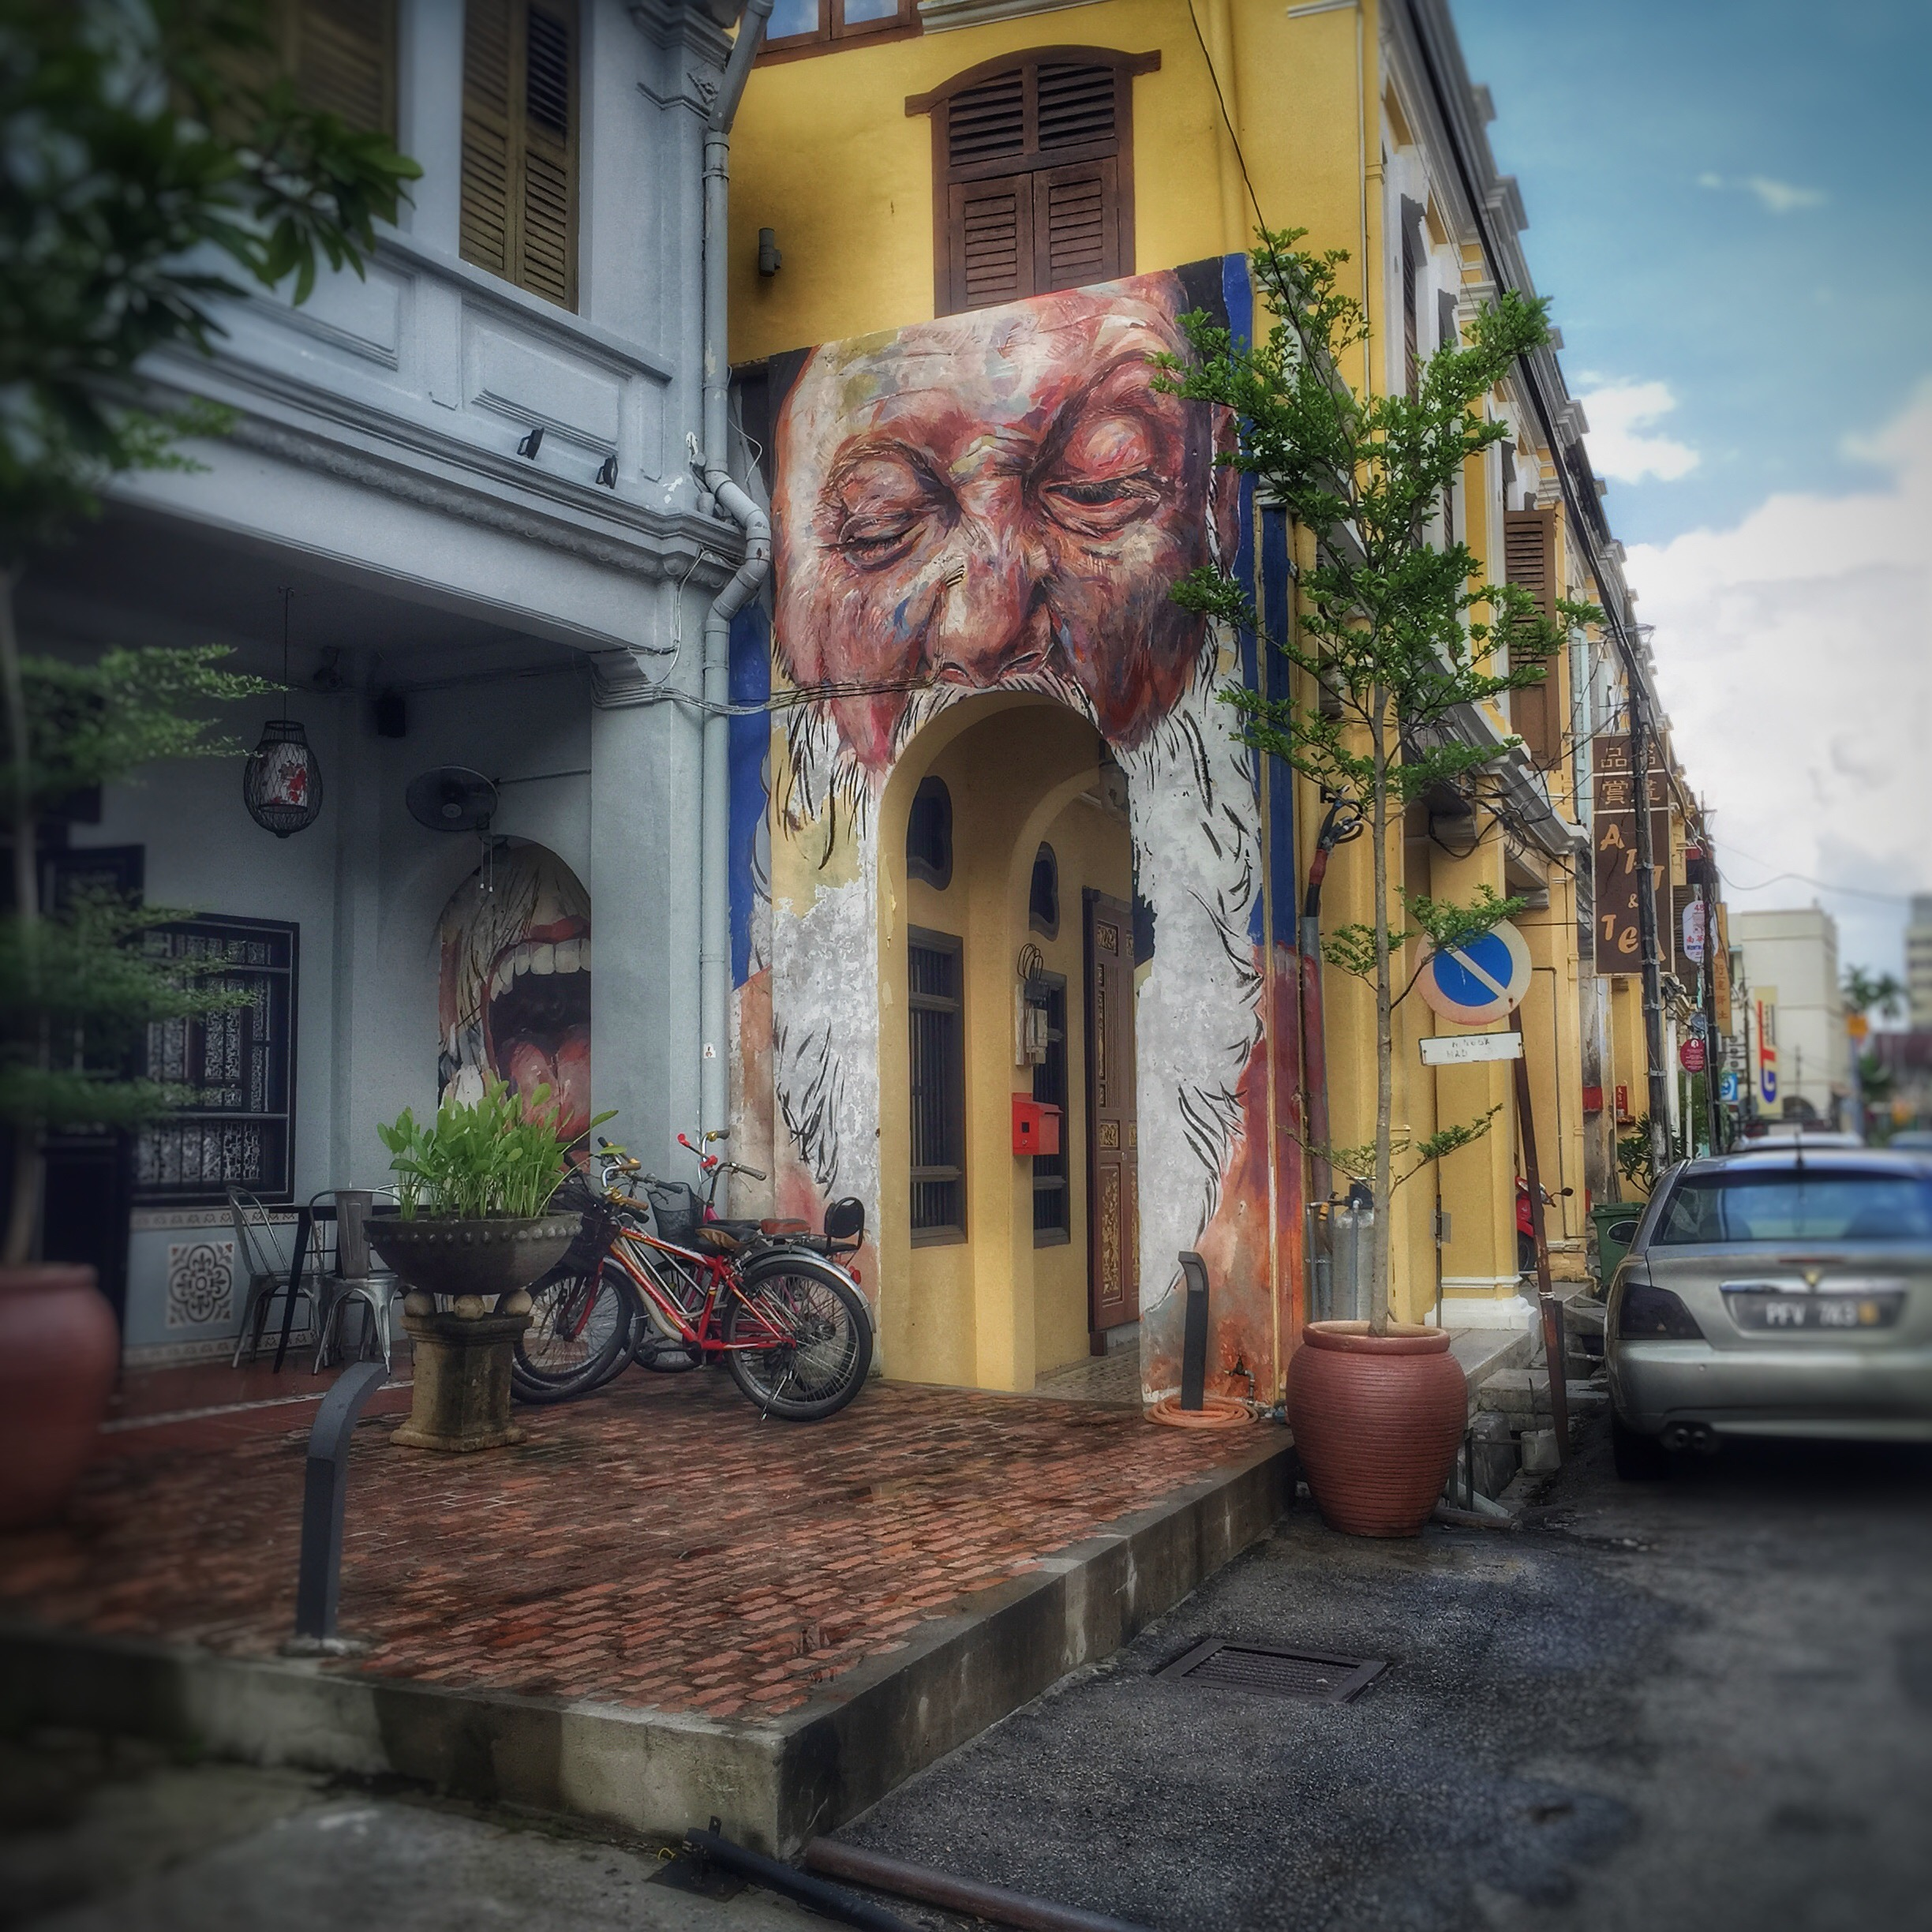 pengang street art -  mouth